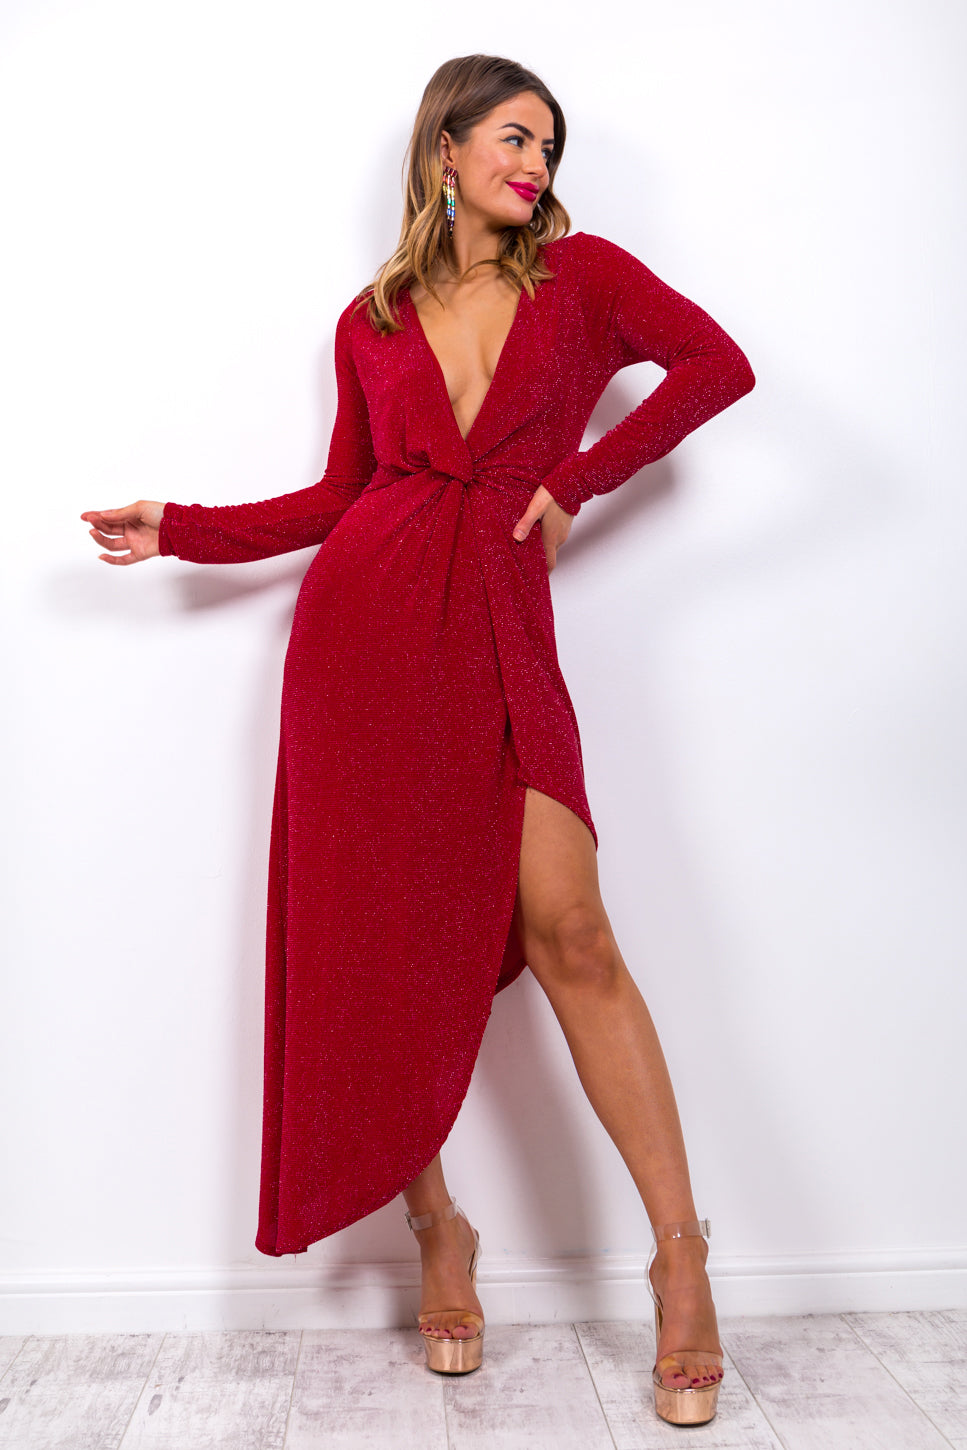 She's A Lady - Midi Dress In RED